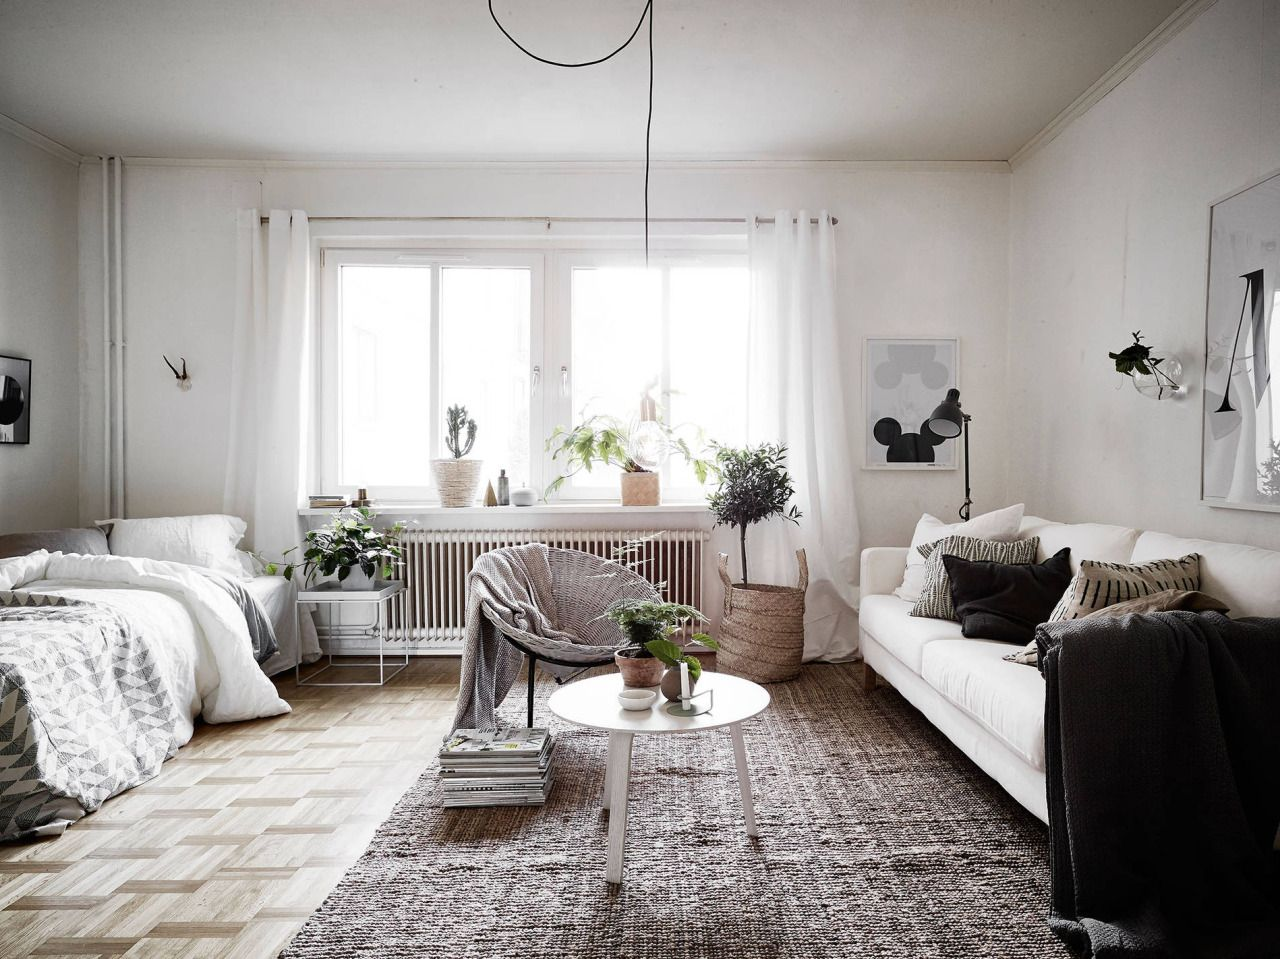 Gravity Home How To Divide A Studio Apartment By Using Rugs